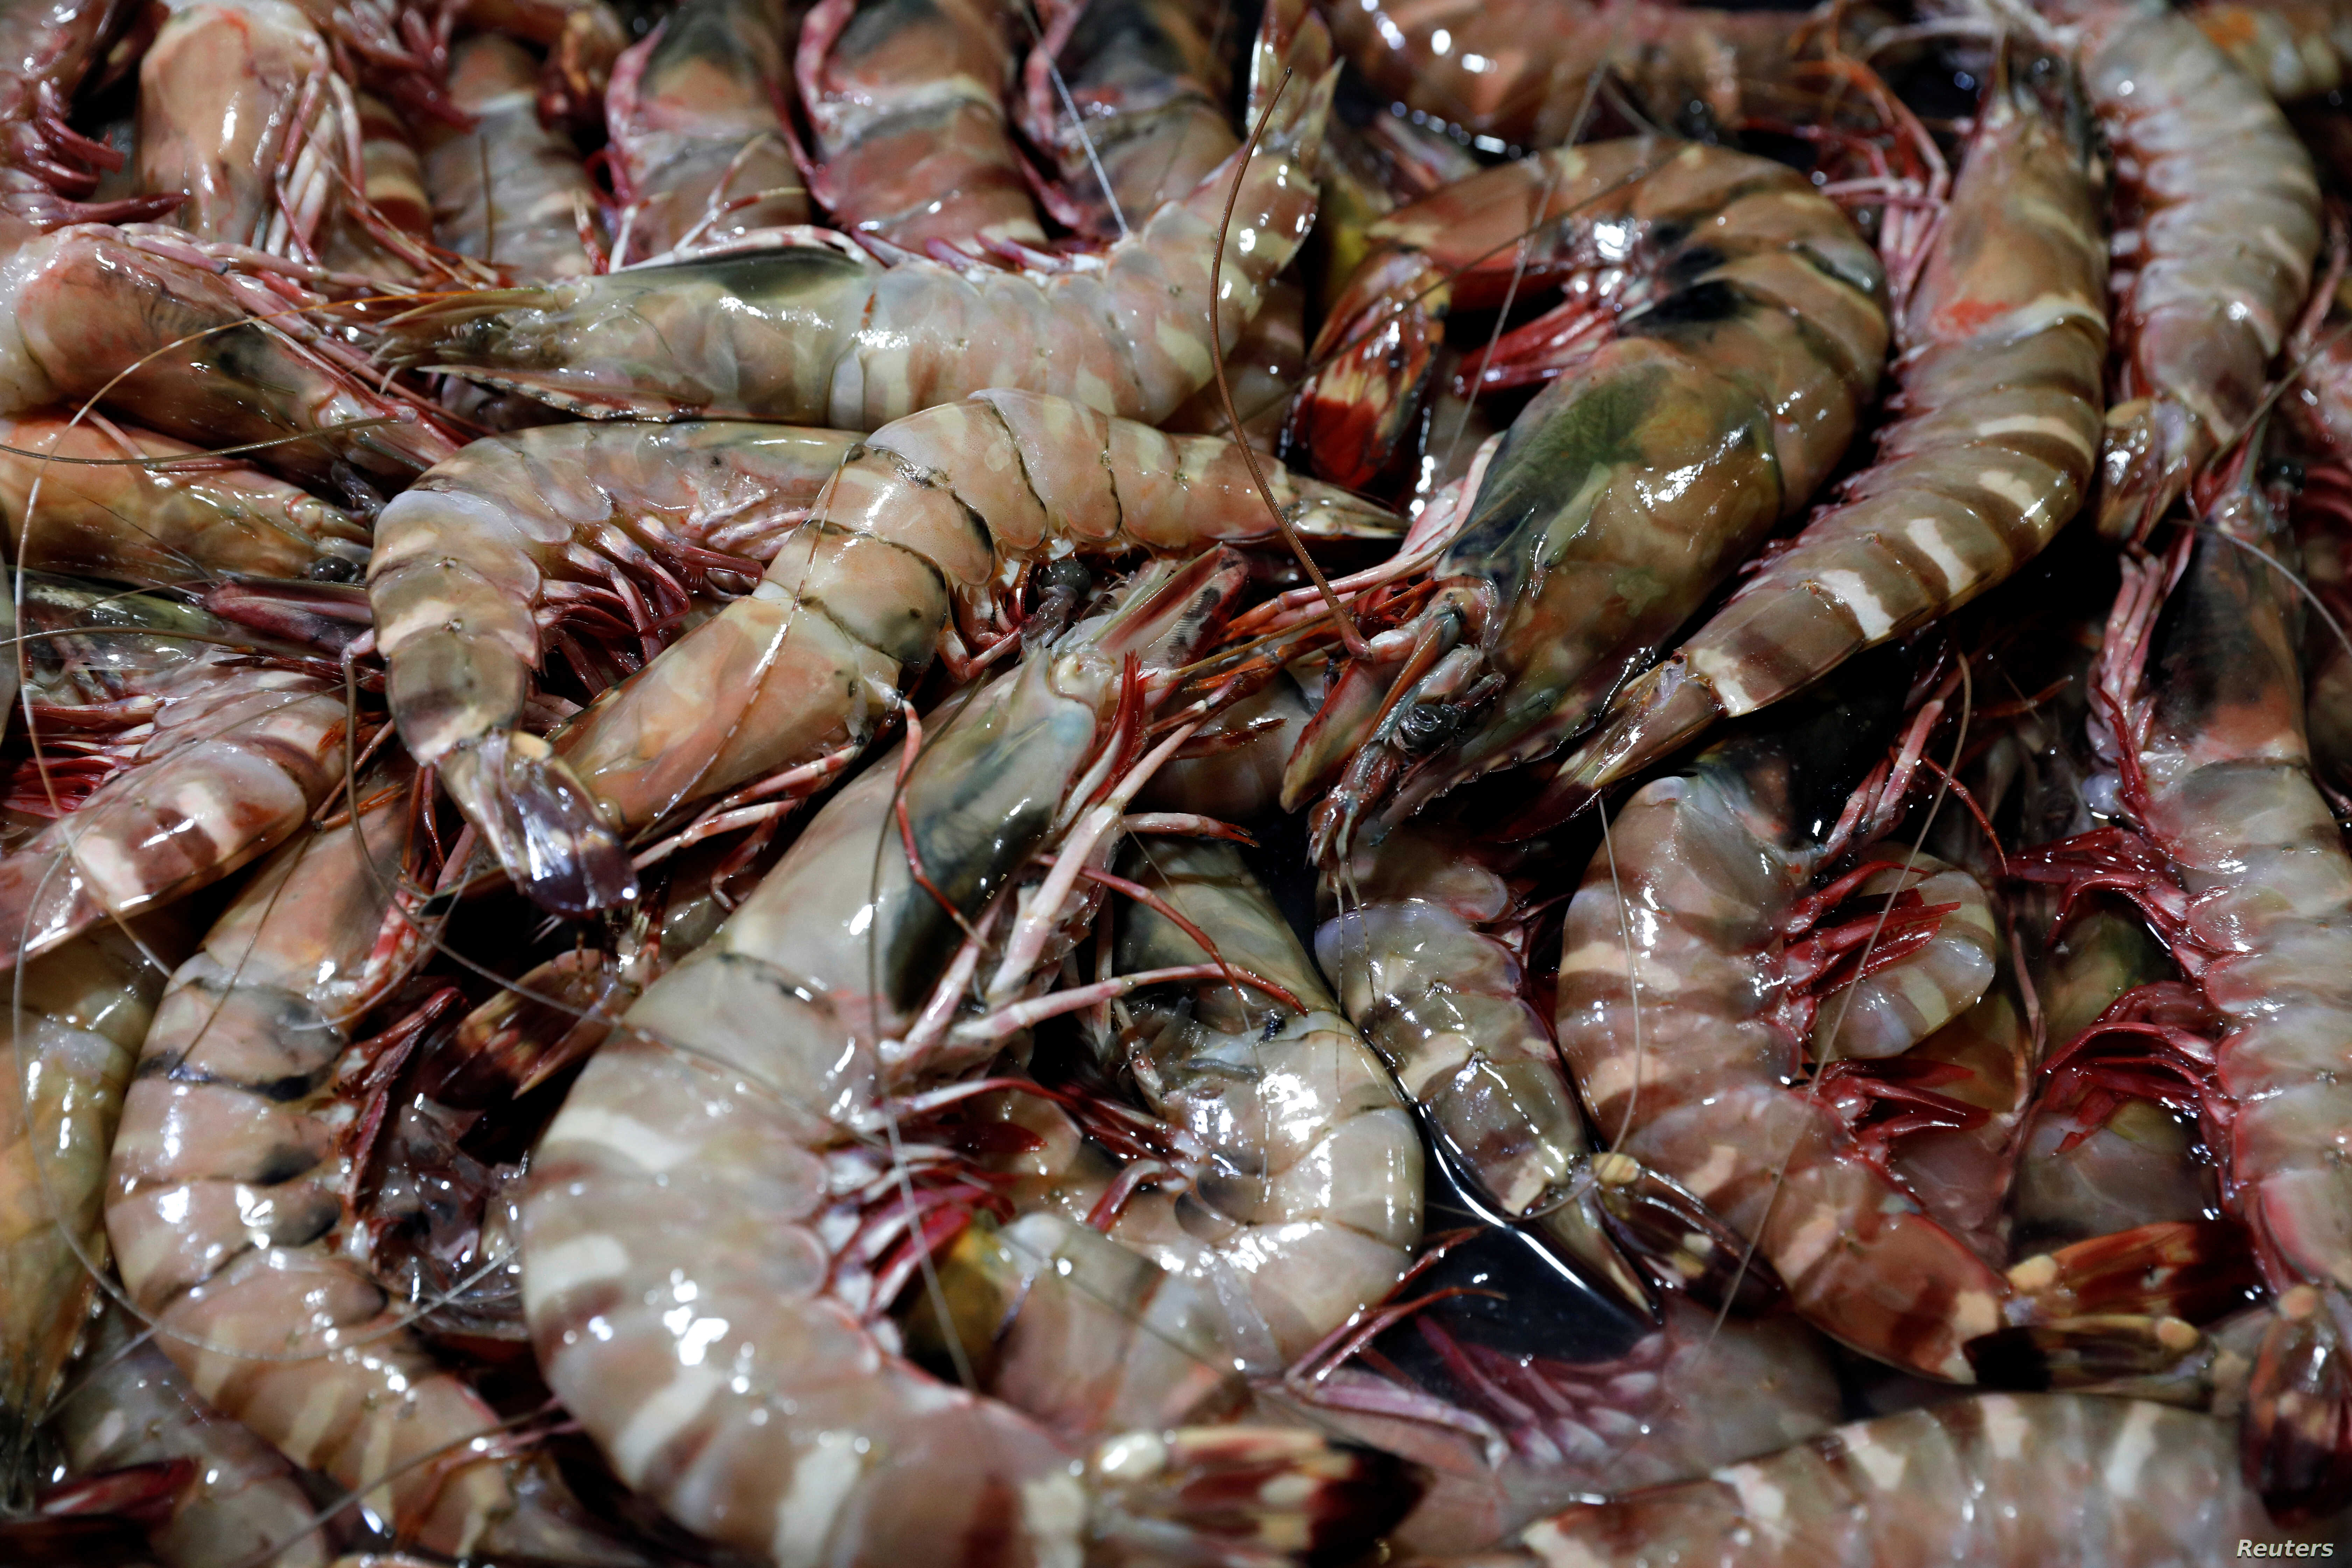 Shrimps are seen displayed for sale at the Filipino Market in Kota Kinabalu, Sabah, Malaysia, July 4, 2018.